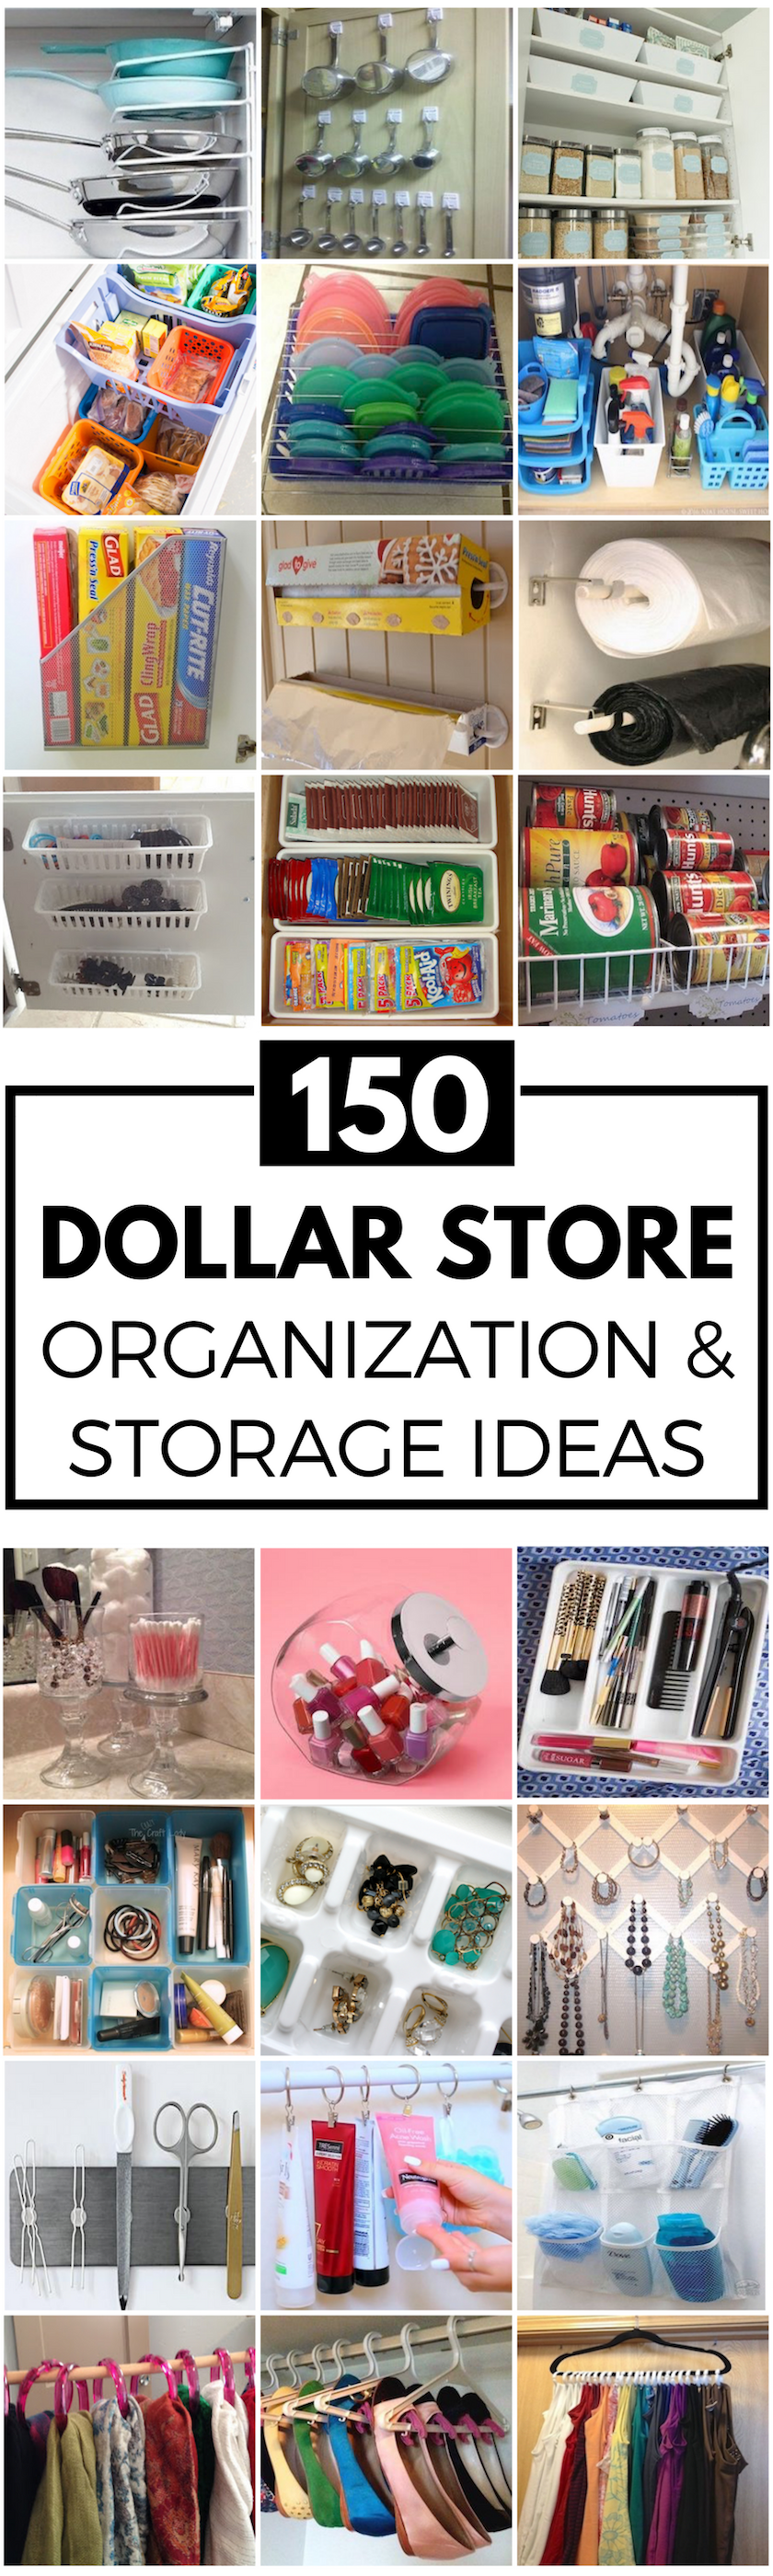 dollar store diy organization 150 diy dollar organization and storage ideas 10803